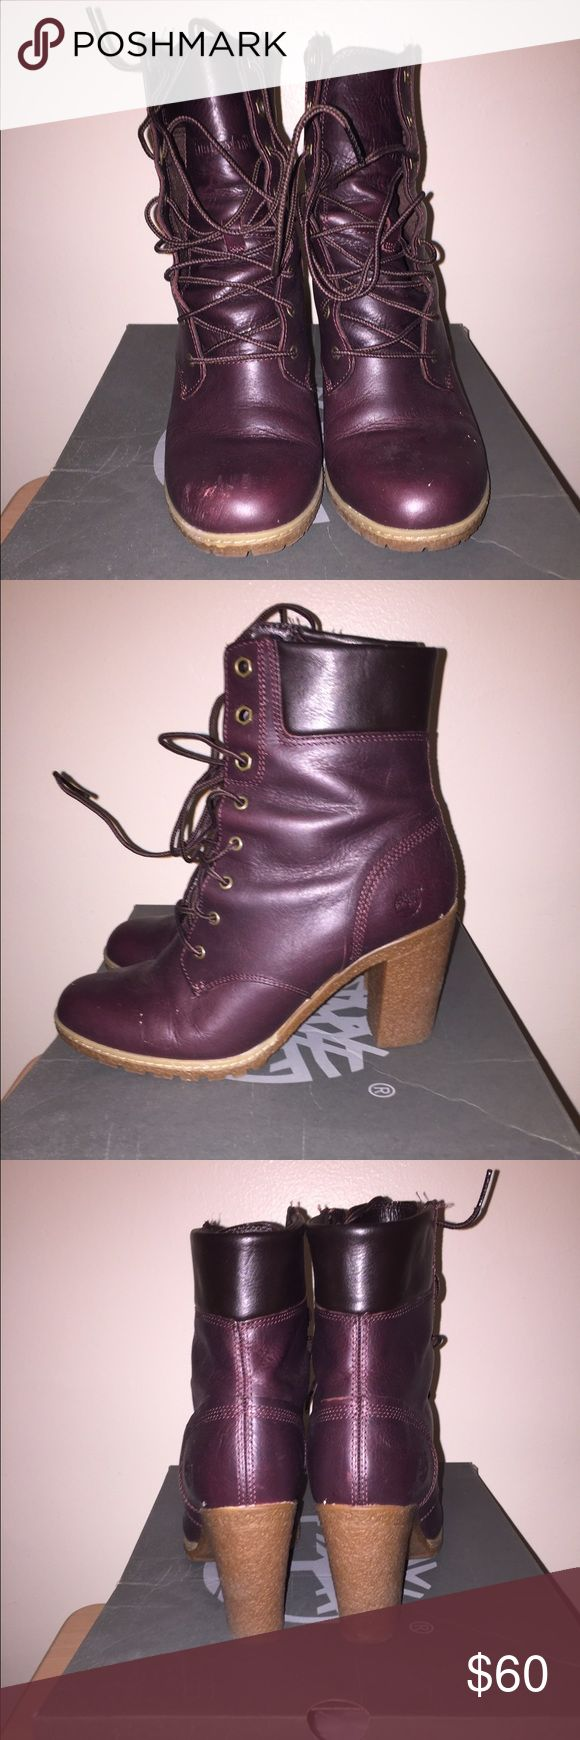 Timberland Booties Burgundy. Leather. Timberland. Heeled Lace Up Bootie. Lightly Worn. Mid Heel. Size 8.5. Timberland Shoes Heeled Boots